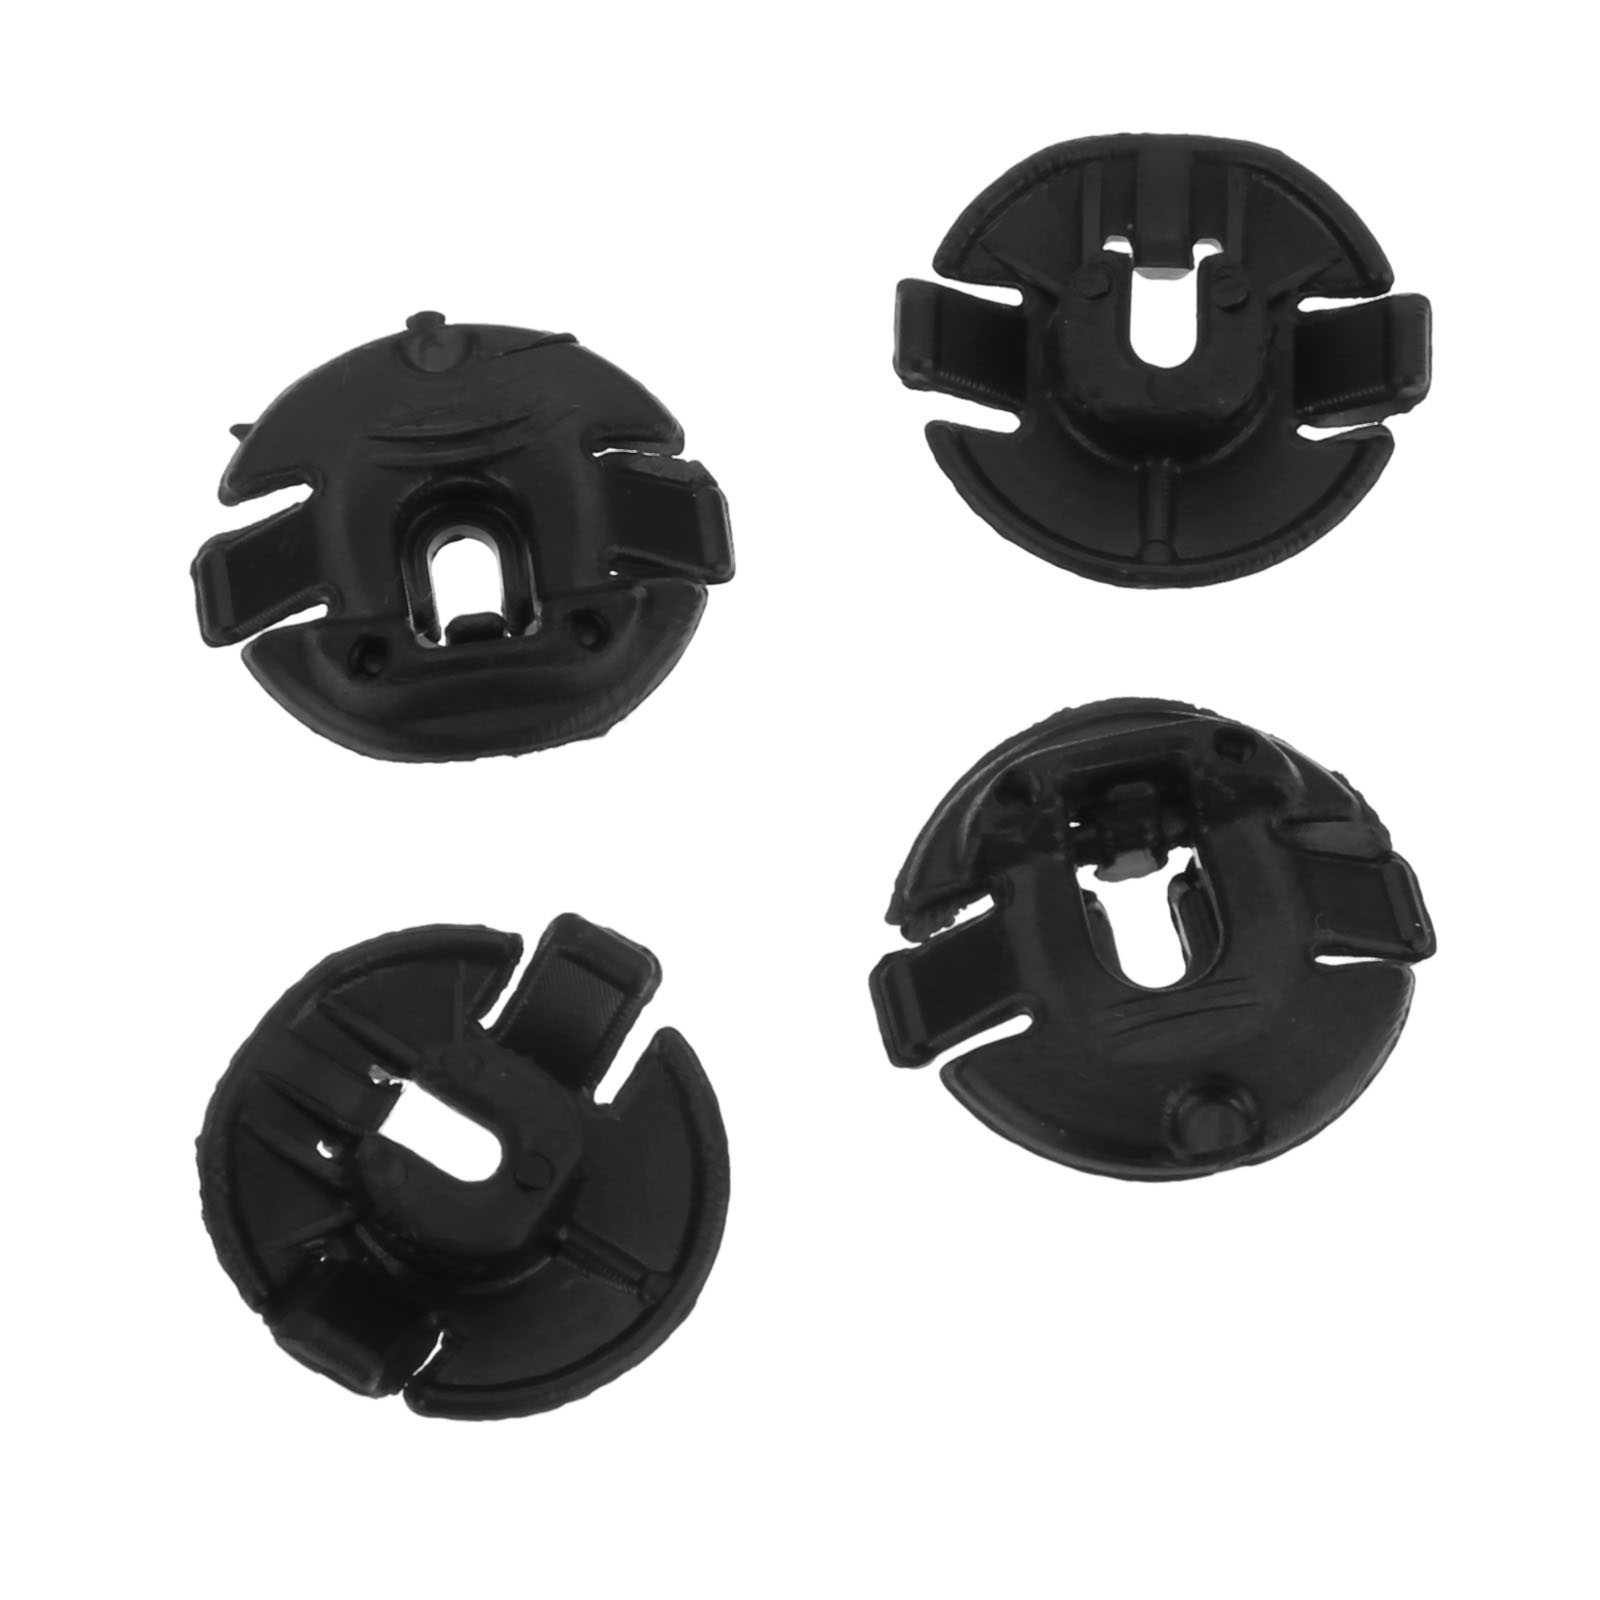 Wings Linings /& Panels 50x Skoda Plastic Nut Grommet for Bumpers Wheel Arches